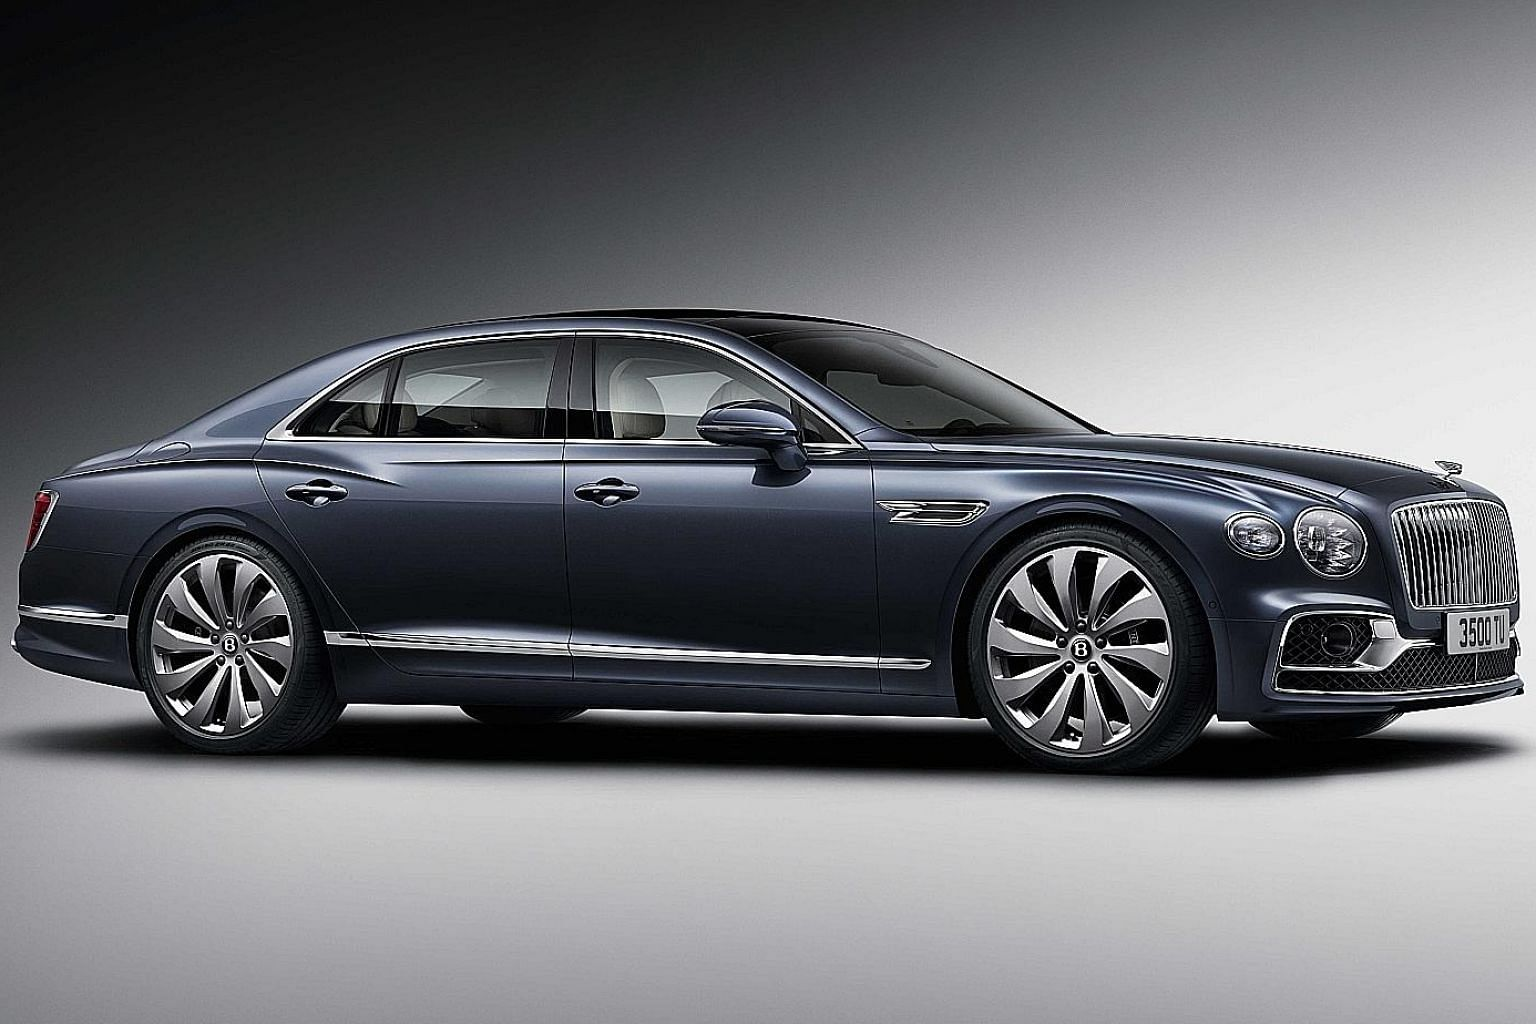 The Bentley Flying Spur will be launched in the fourth quarter of this year, with deliveries beginning from the first quarter of next year.